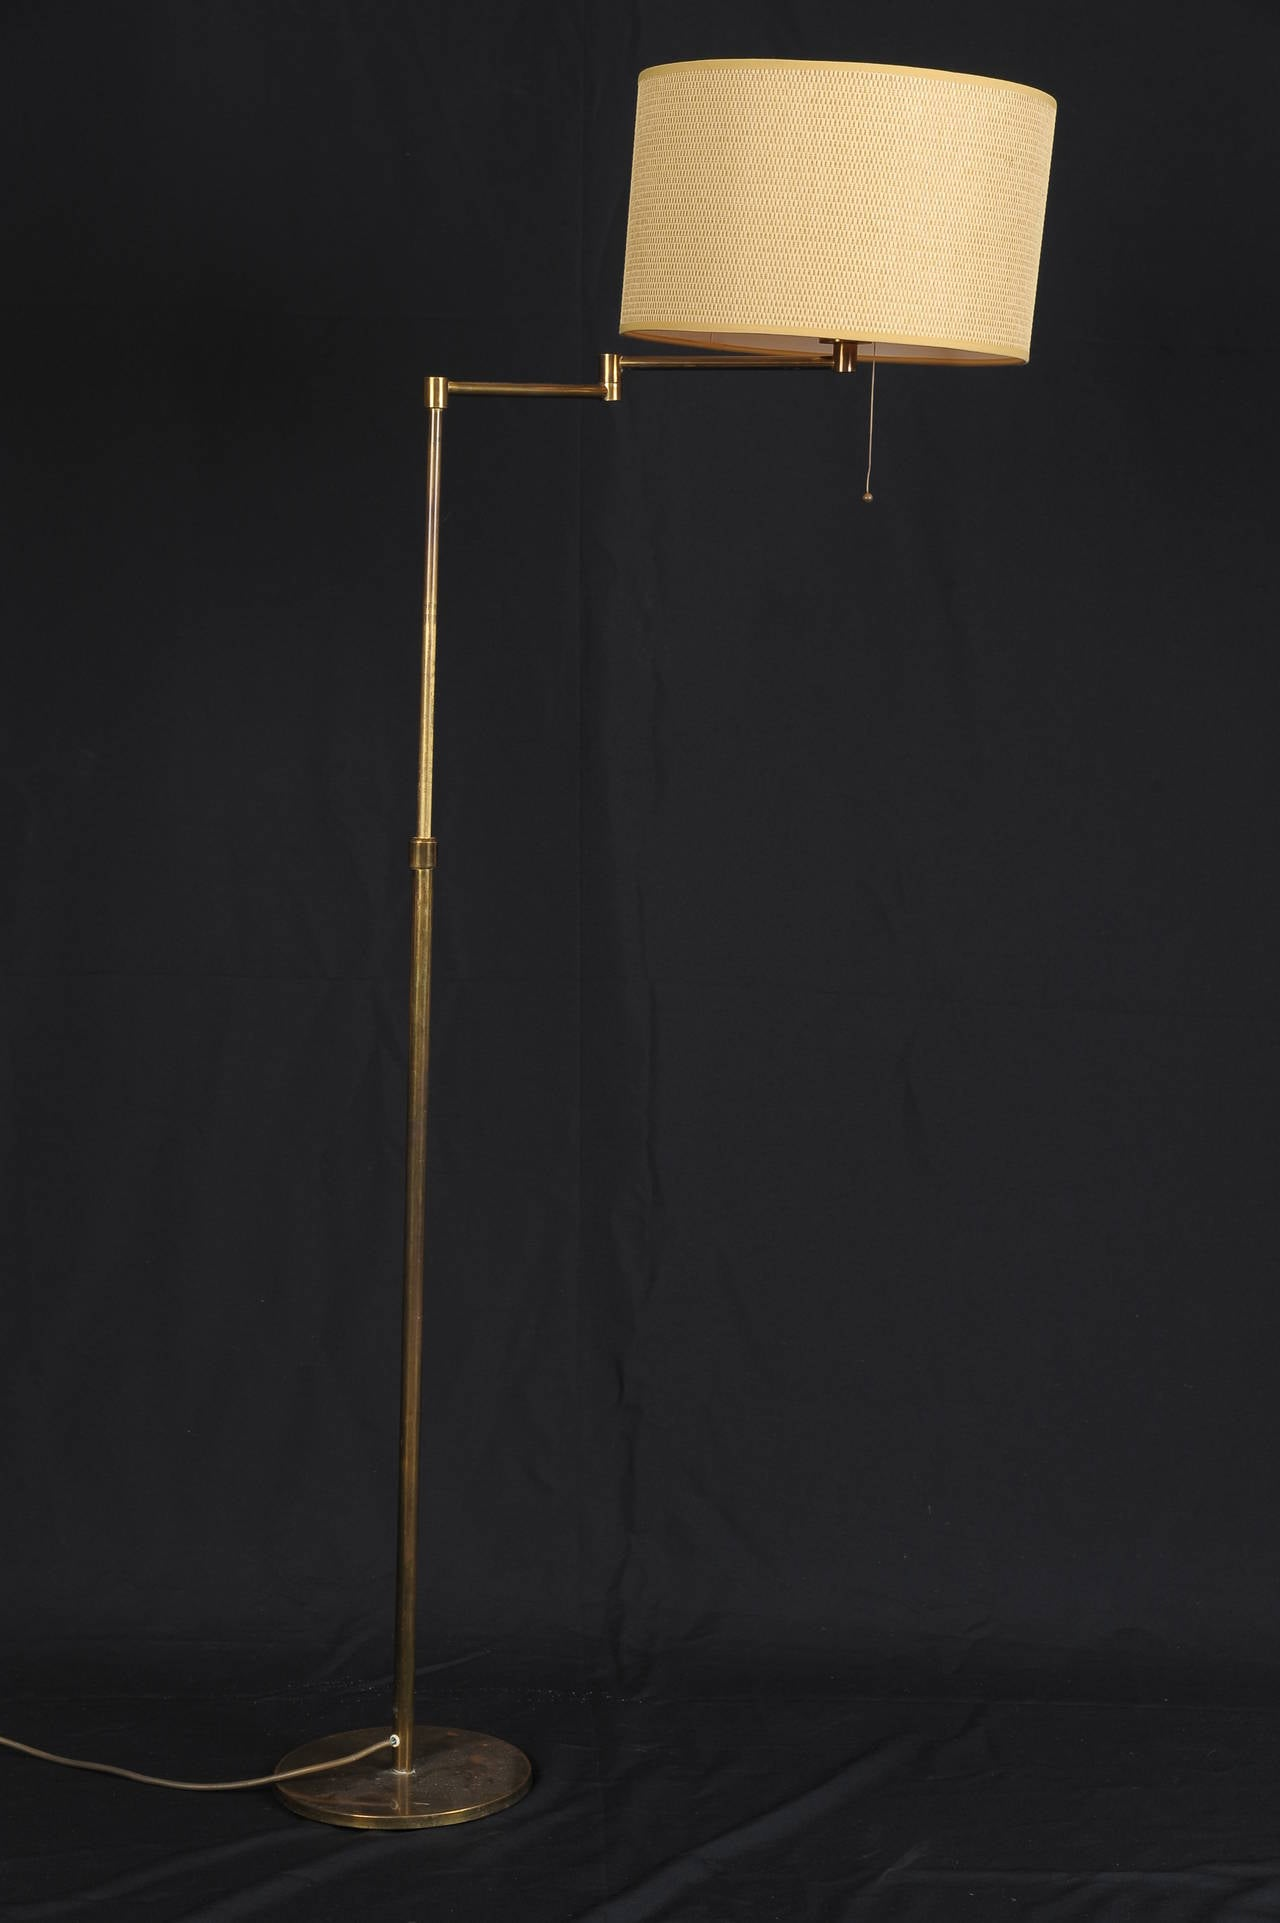 Adjustable height and swing arm antique brass floor lamp in Style of Arredoluce. Lamp is in original condition. Full extended arm is 25 inches.